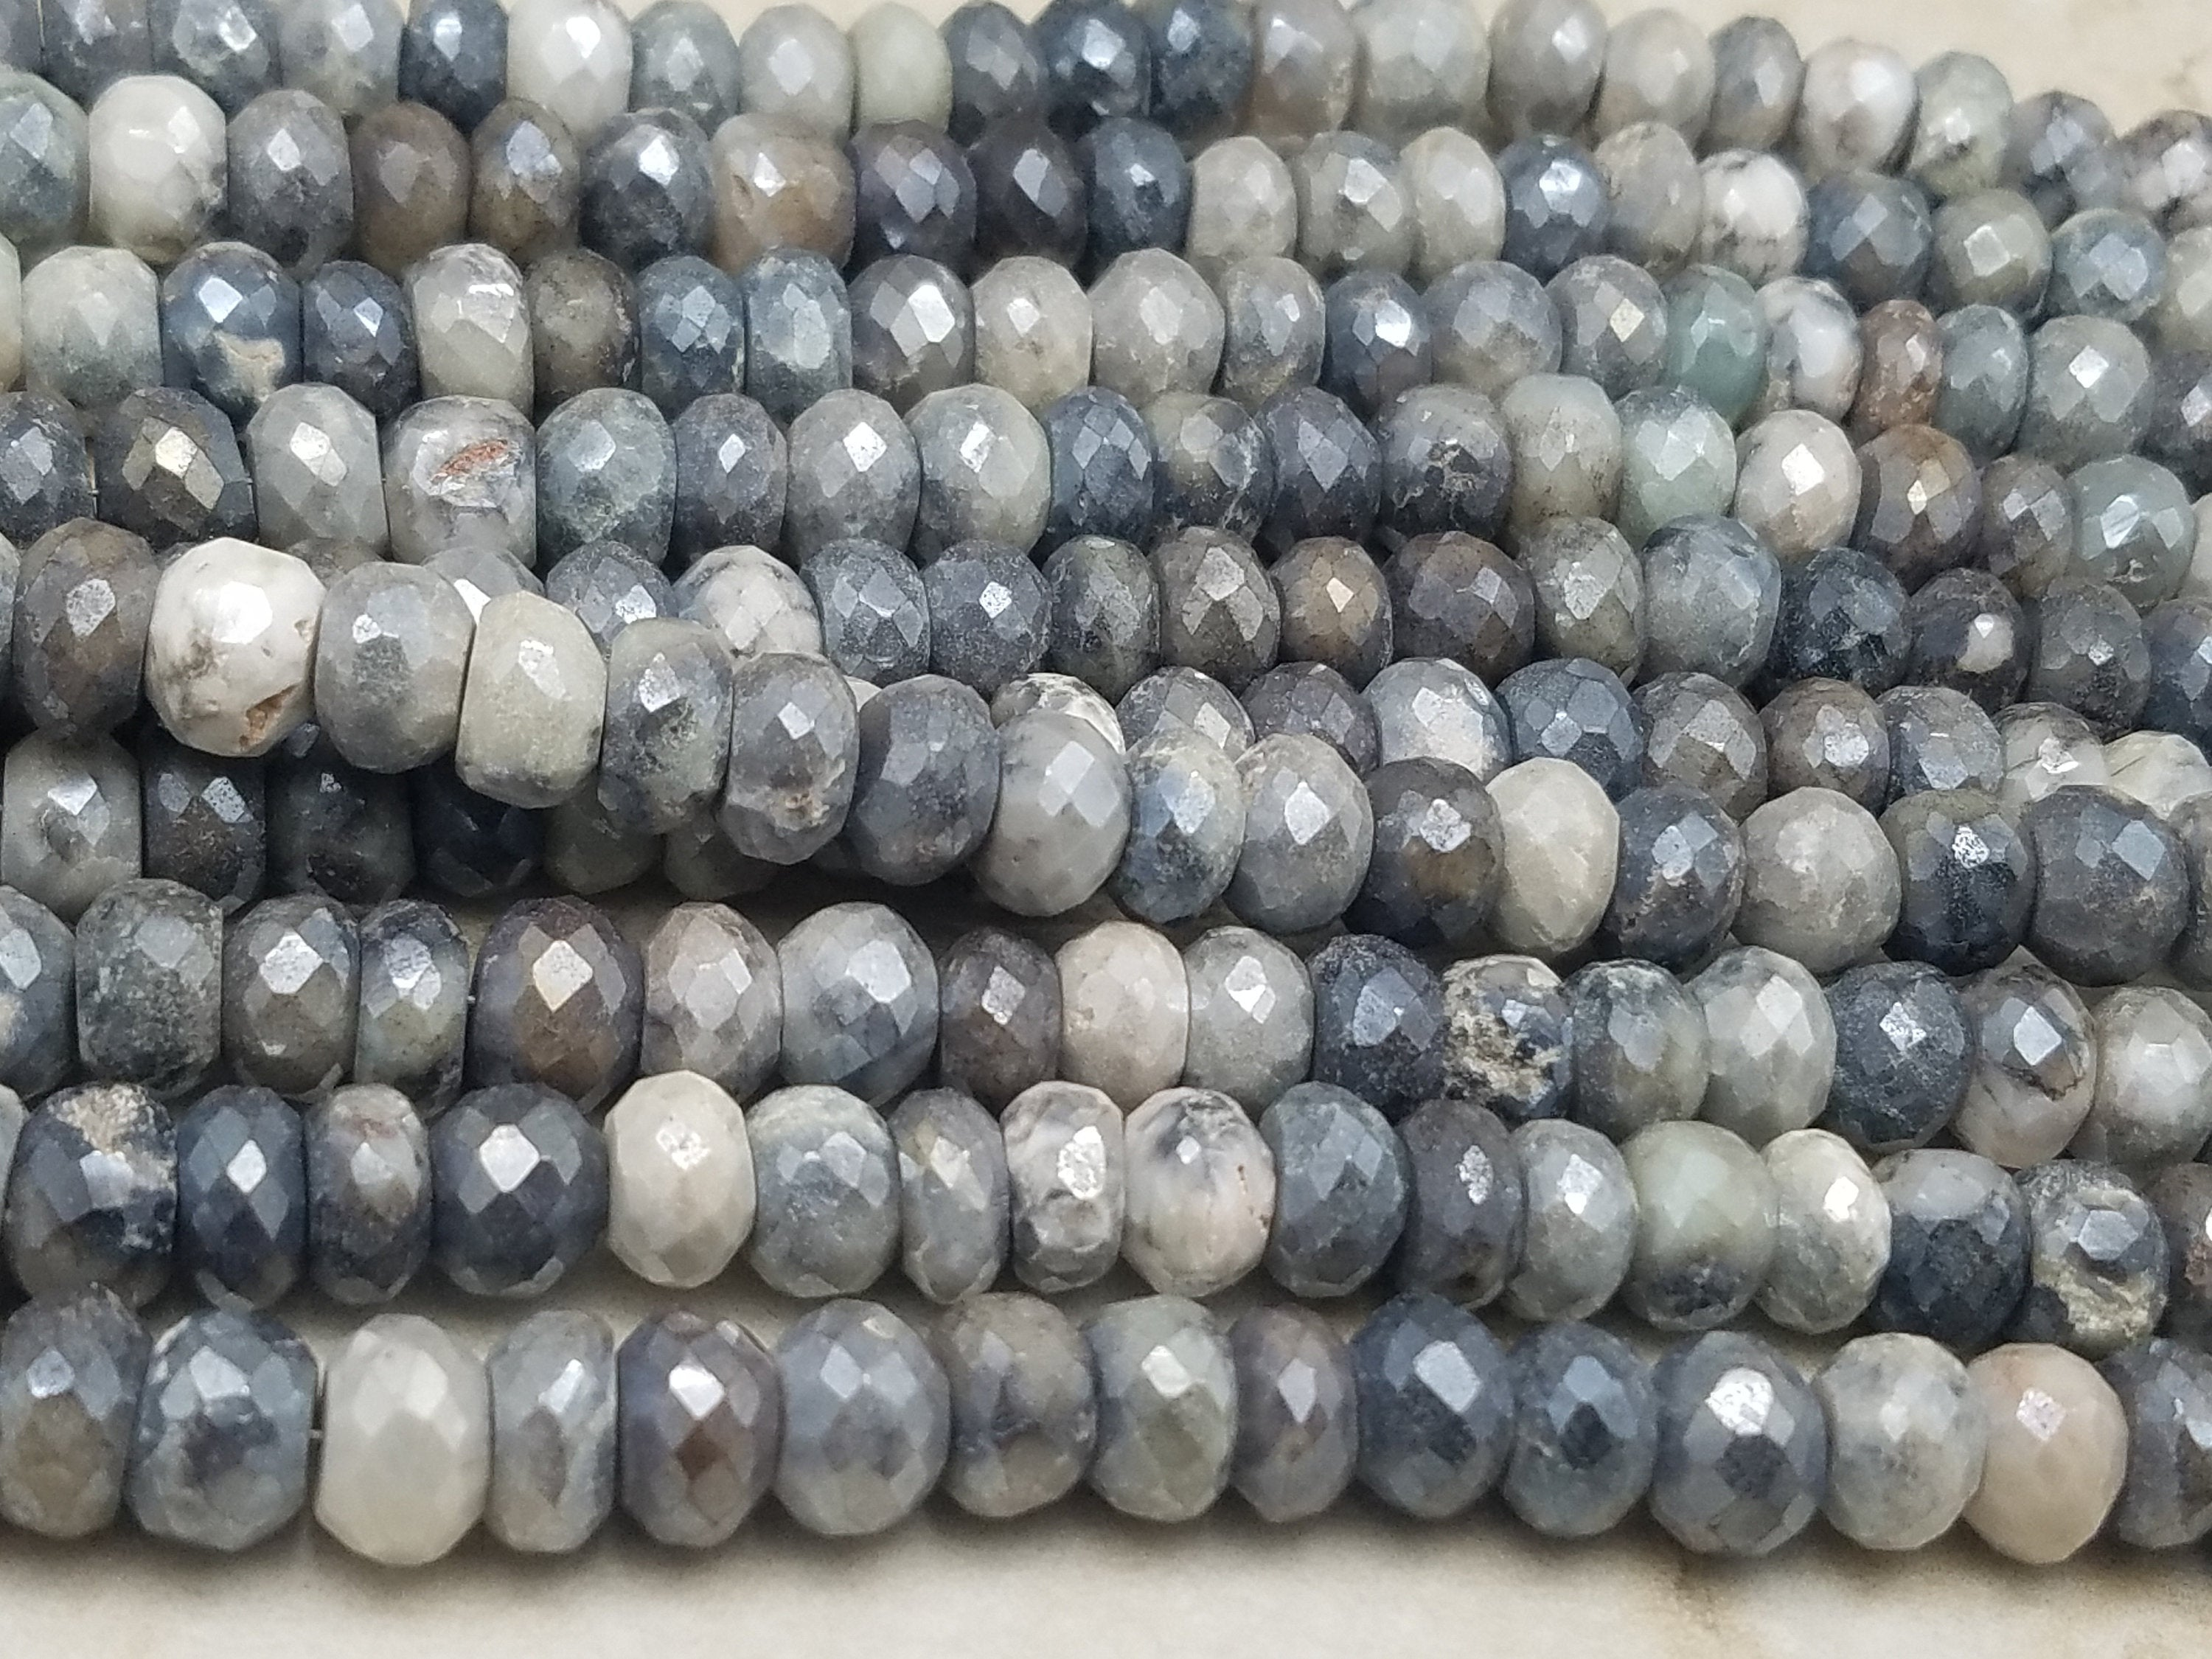 7mm to 9mm Gray Mix Silverite Moonstone Faceted Rondelle Beads, 8 inch